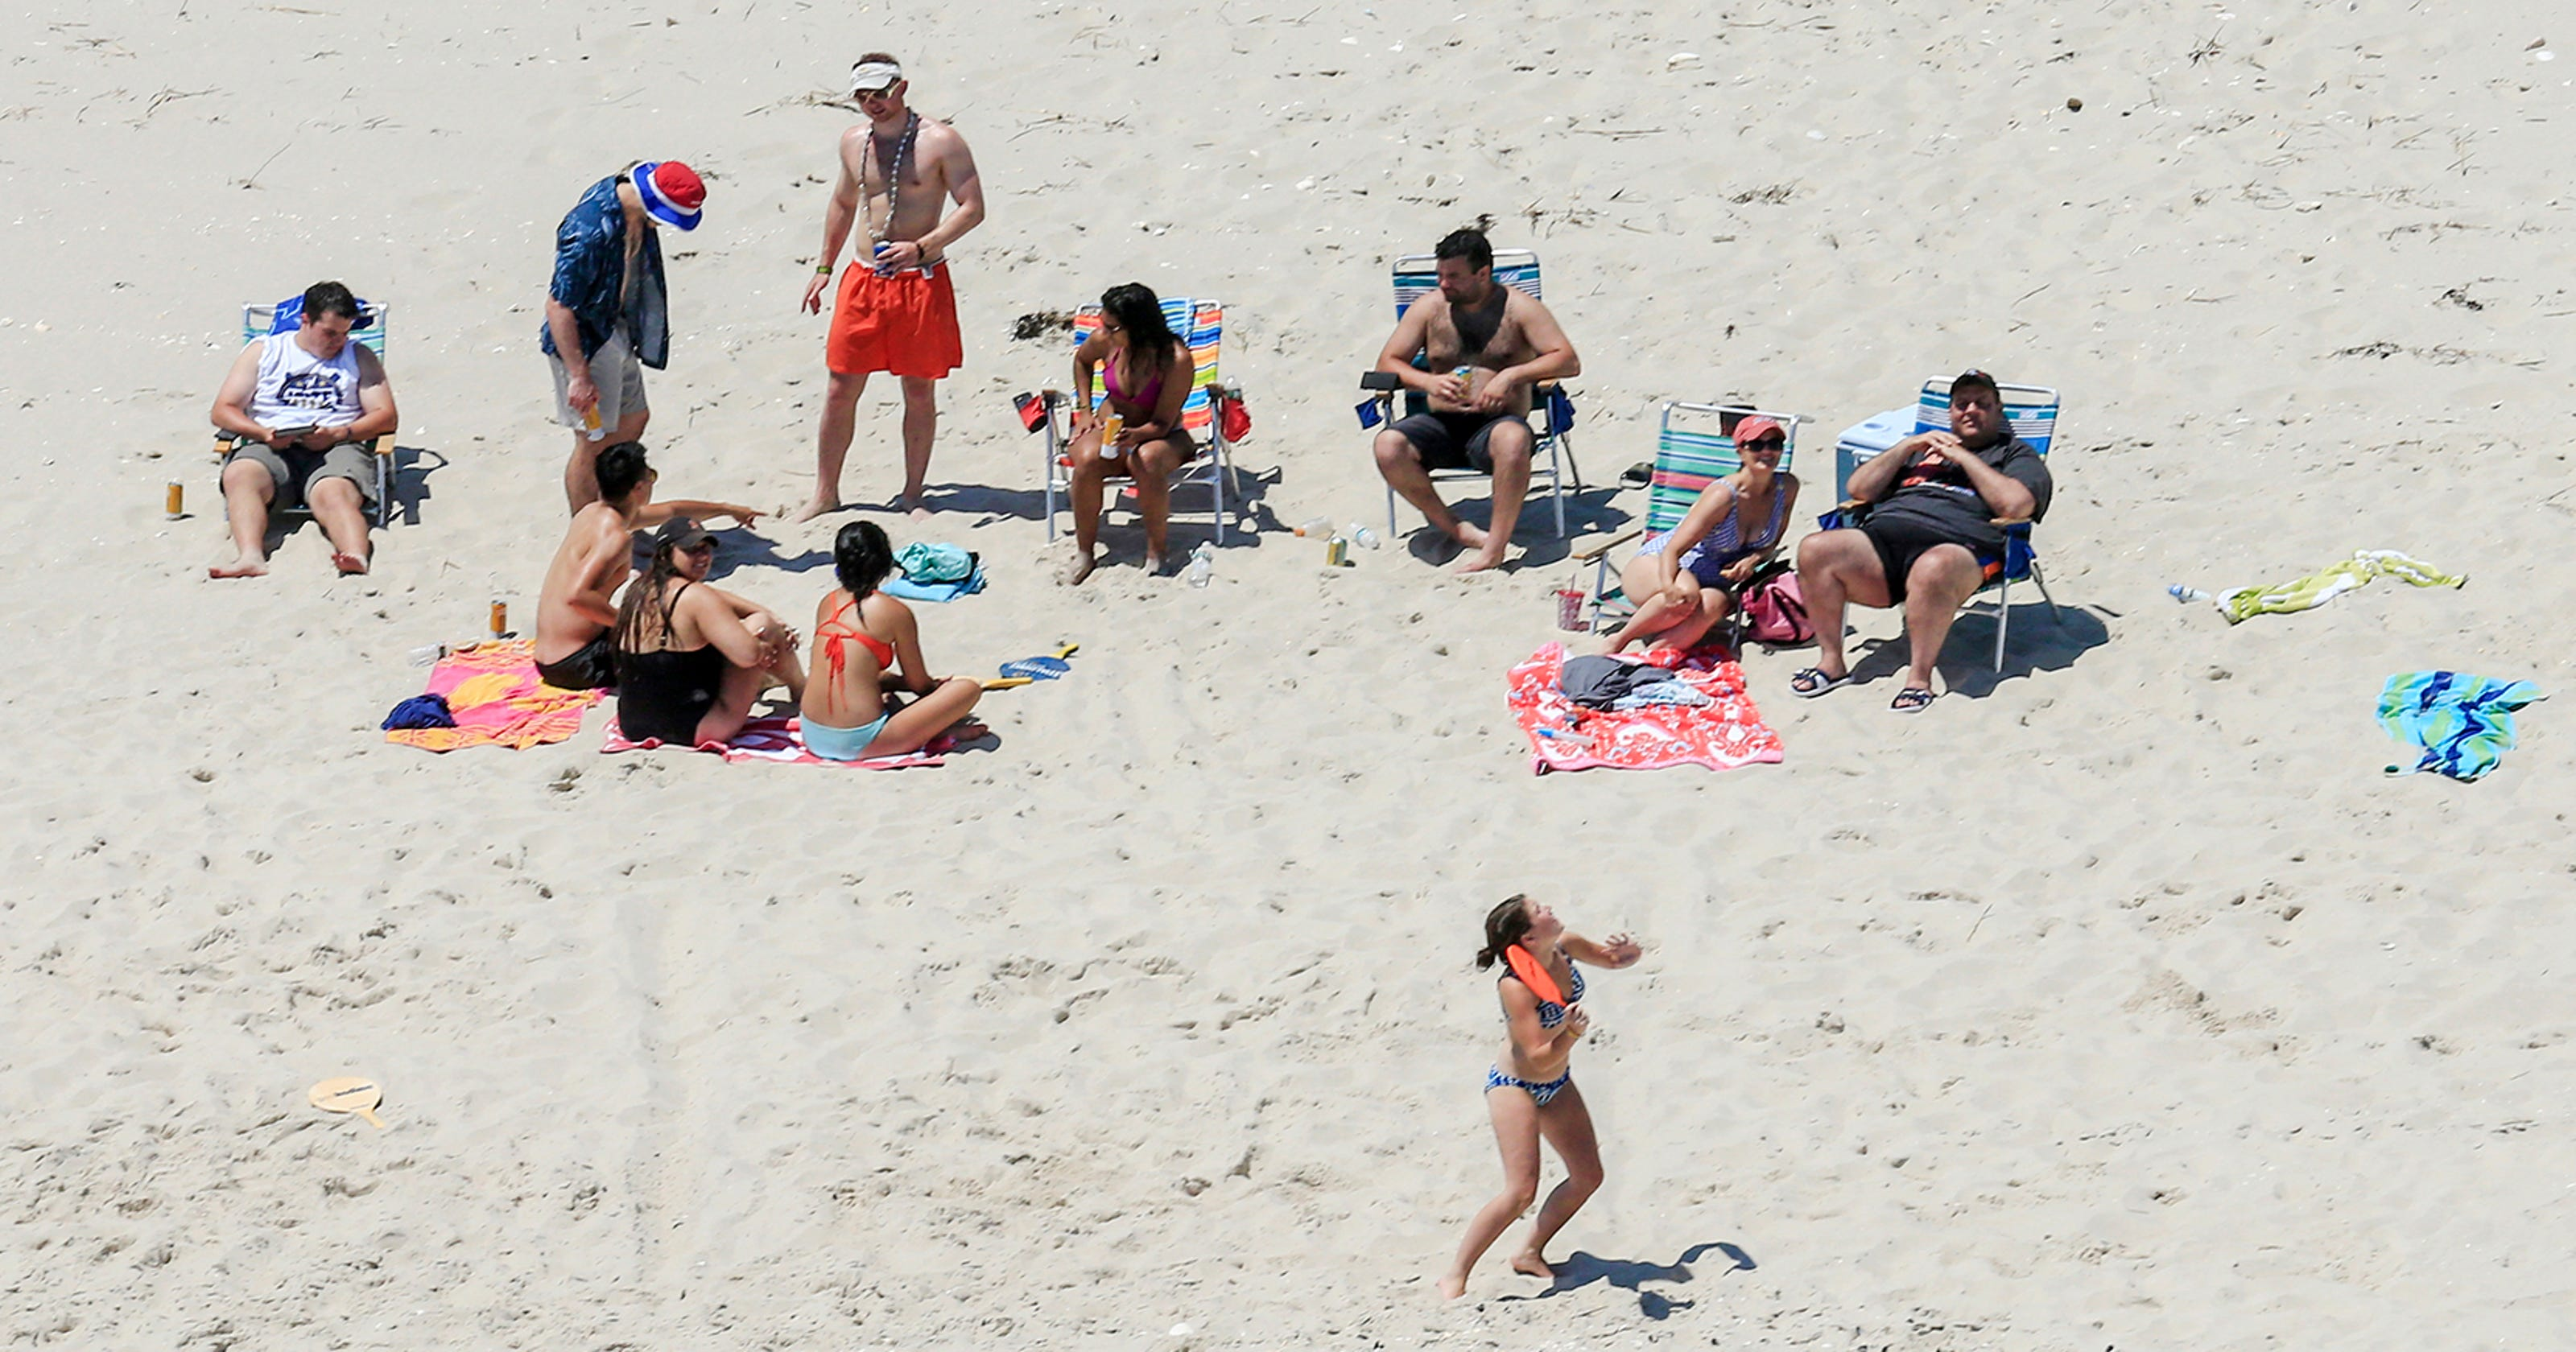 NJ government shutdown: Will state parks and beaches close